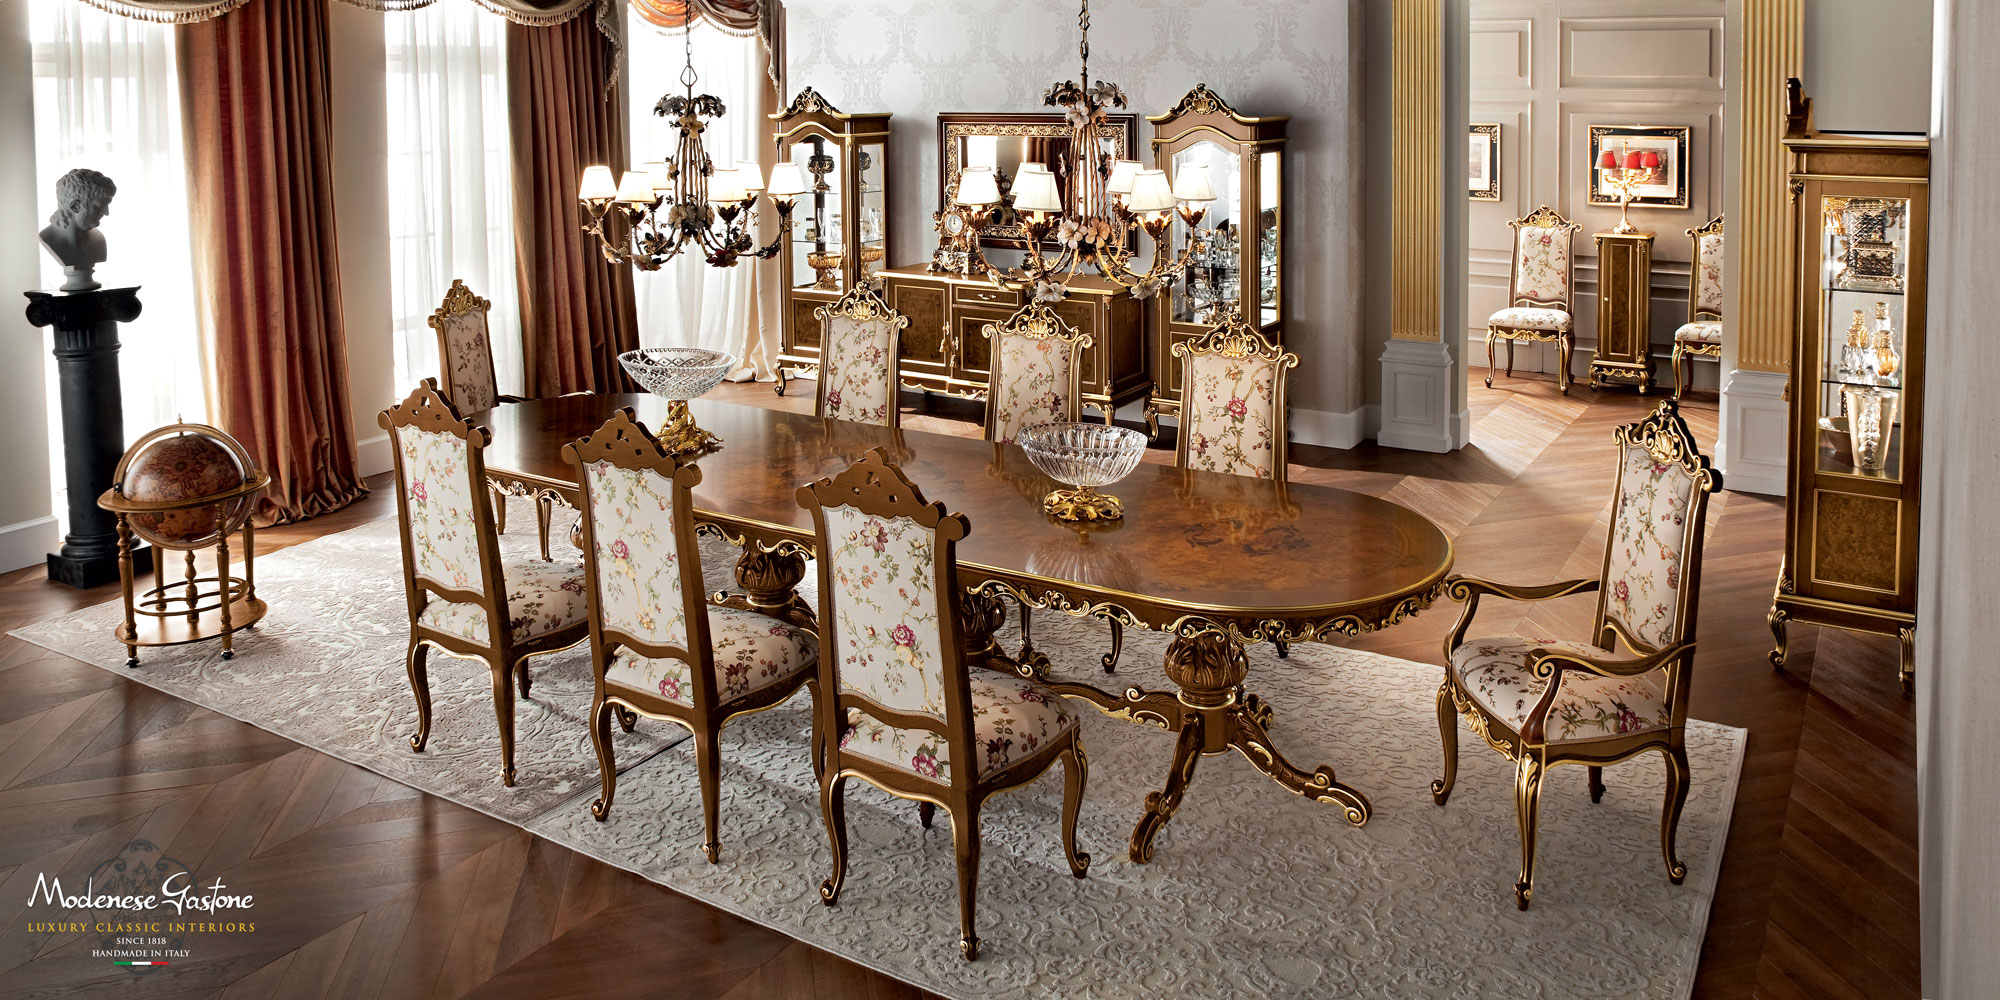 Dining-room-furnishing-ideas-inlaid-one-piece-table-Casanova-collection-Modenese-Gastone